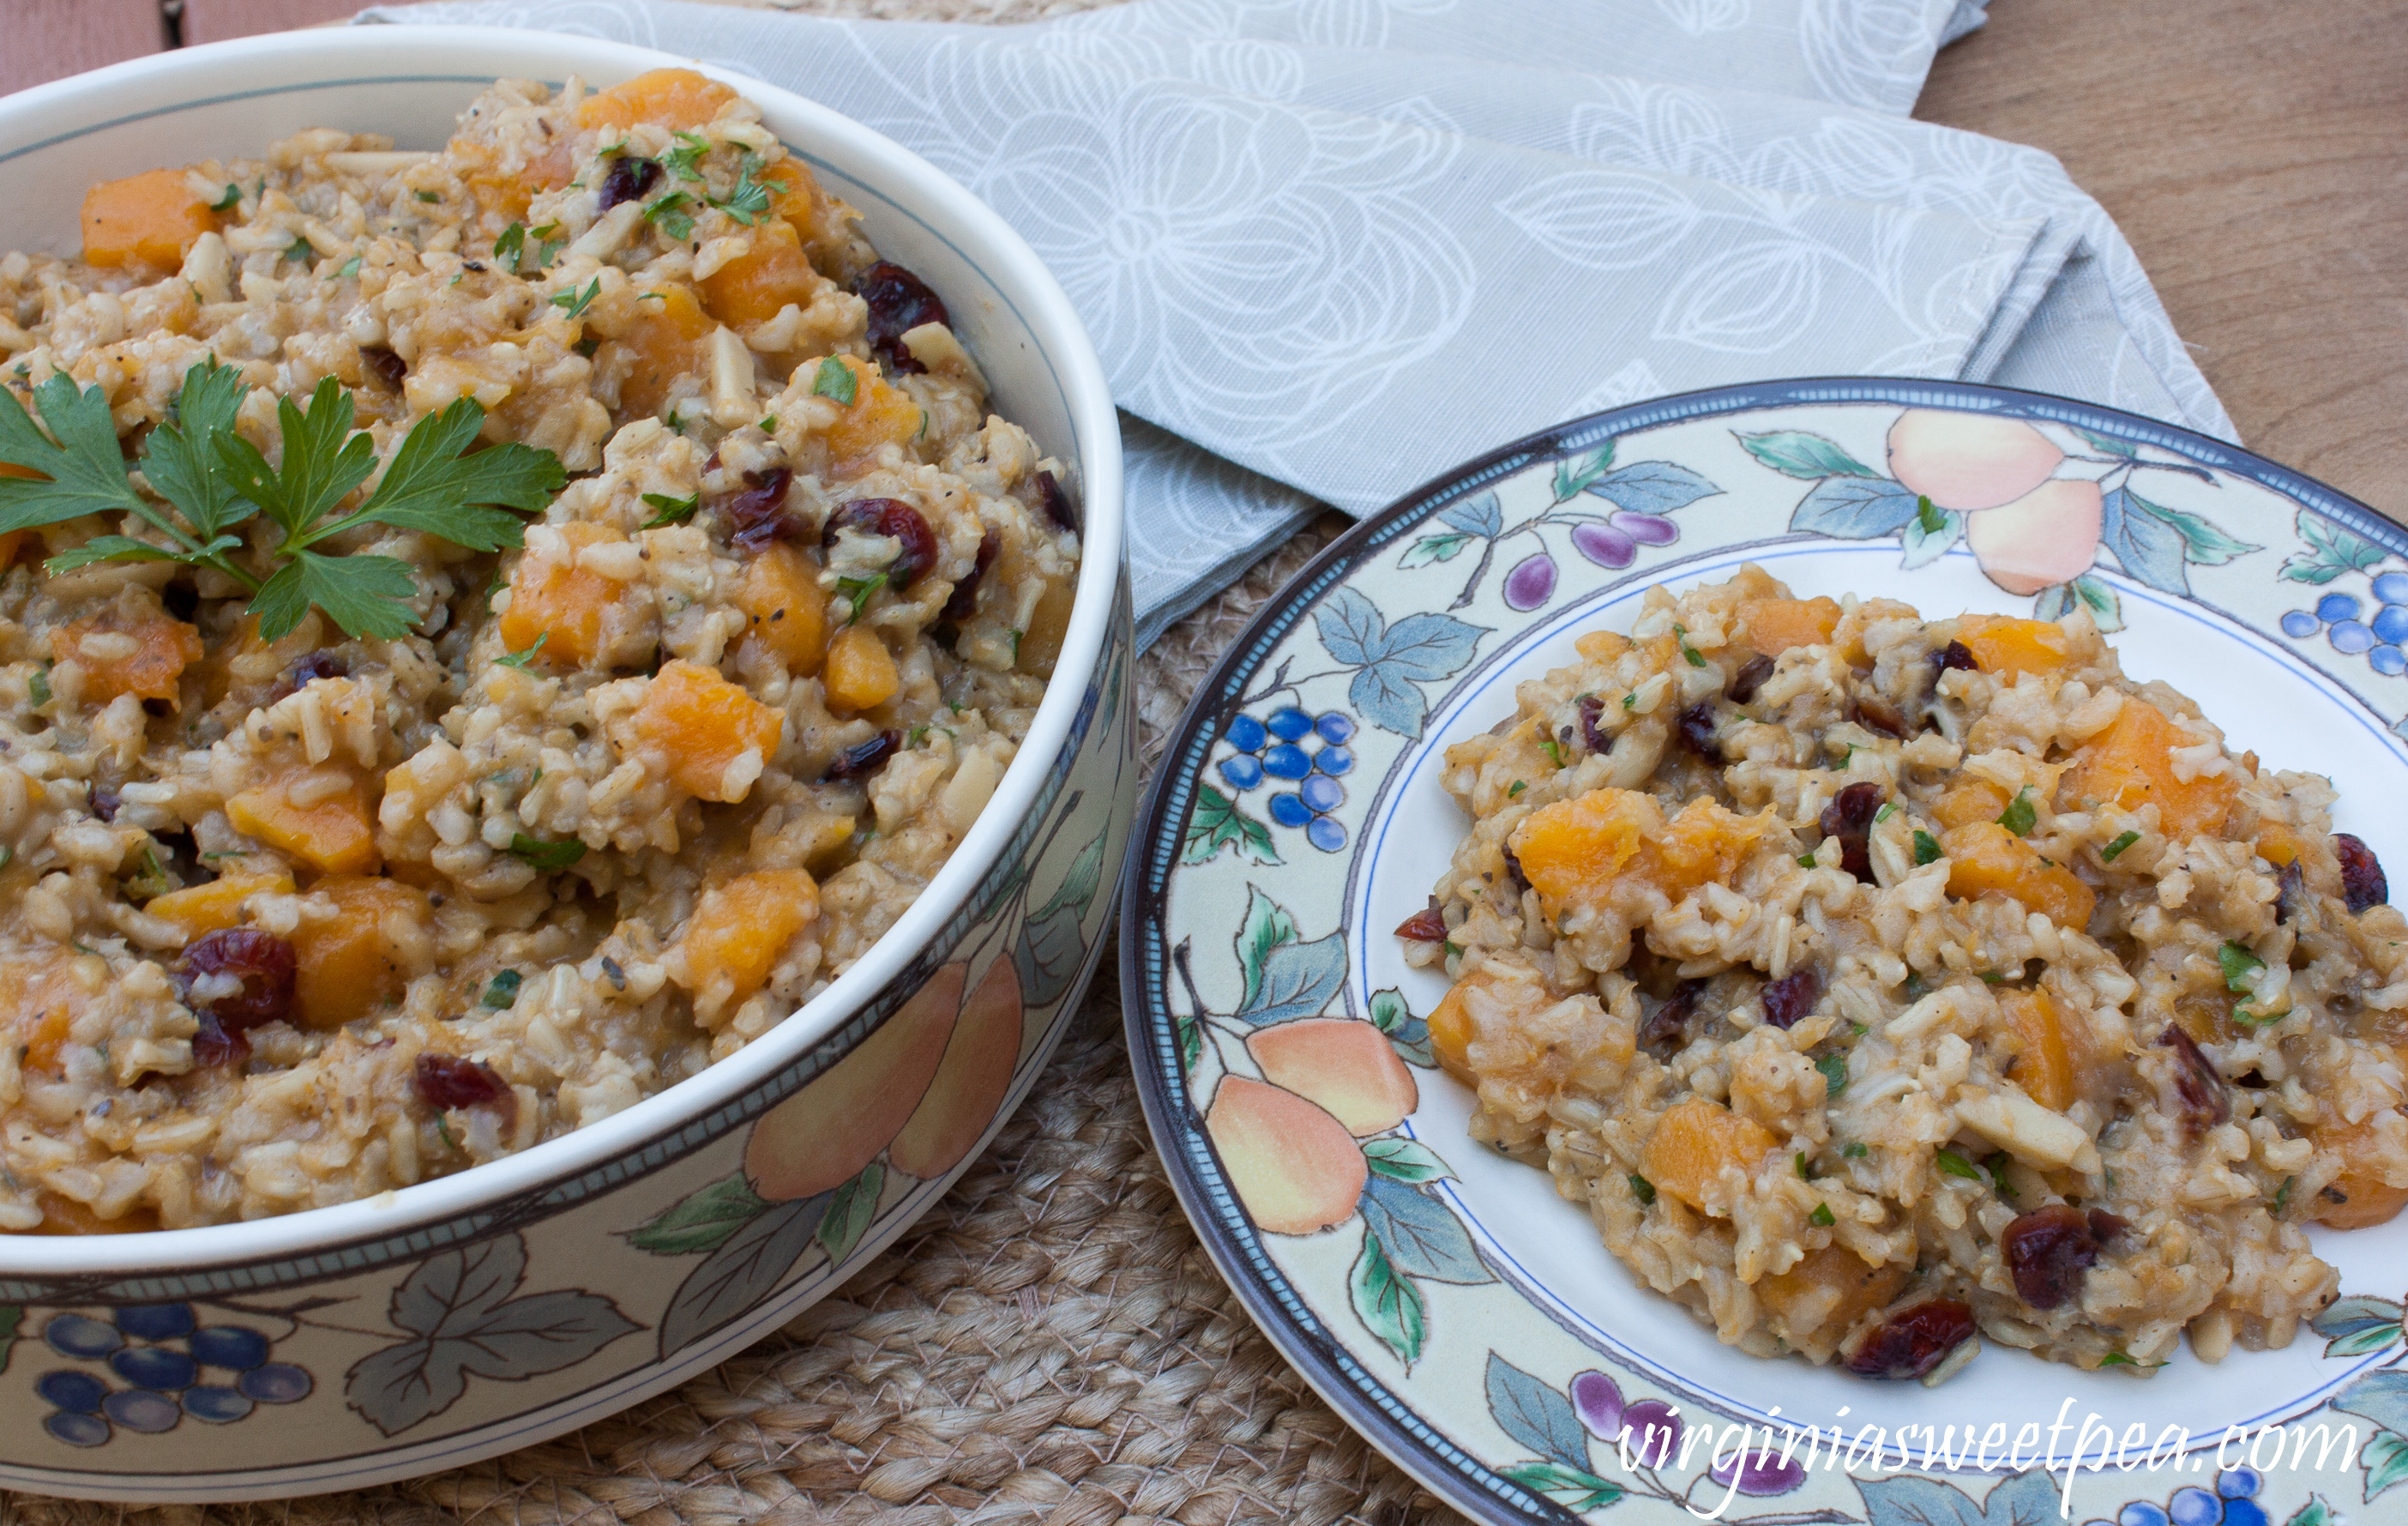 Butternut Squash Rice Pilaf - Butternut squash, almonds and dried cranberries mixed with brown rice cooked with garlic, onion, and spices makes a flavorful combination.